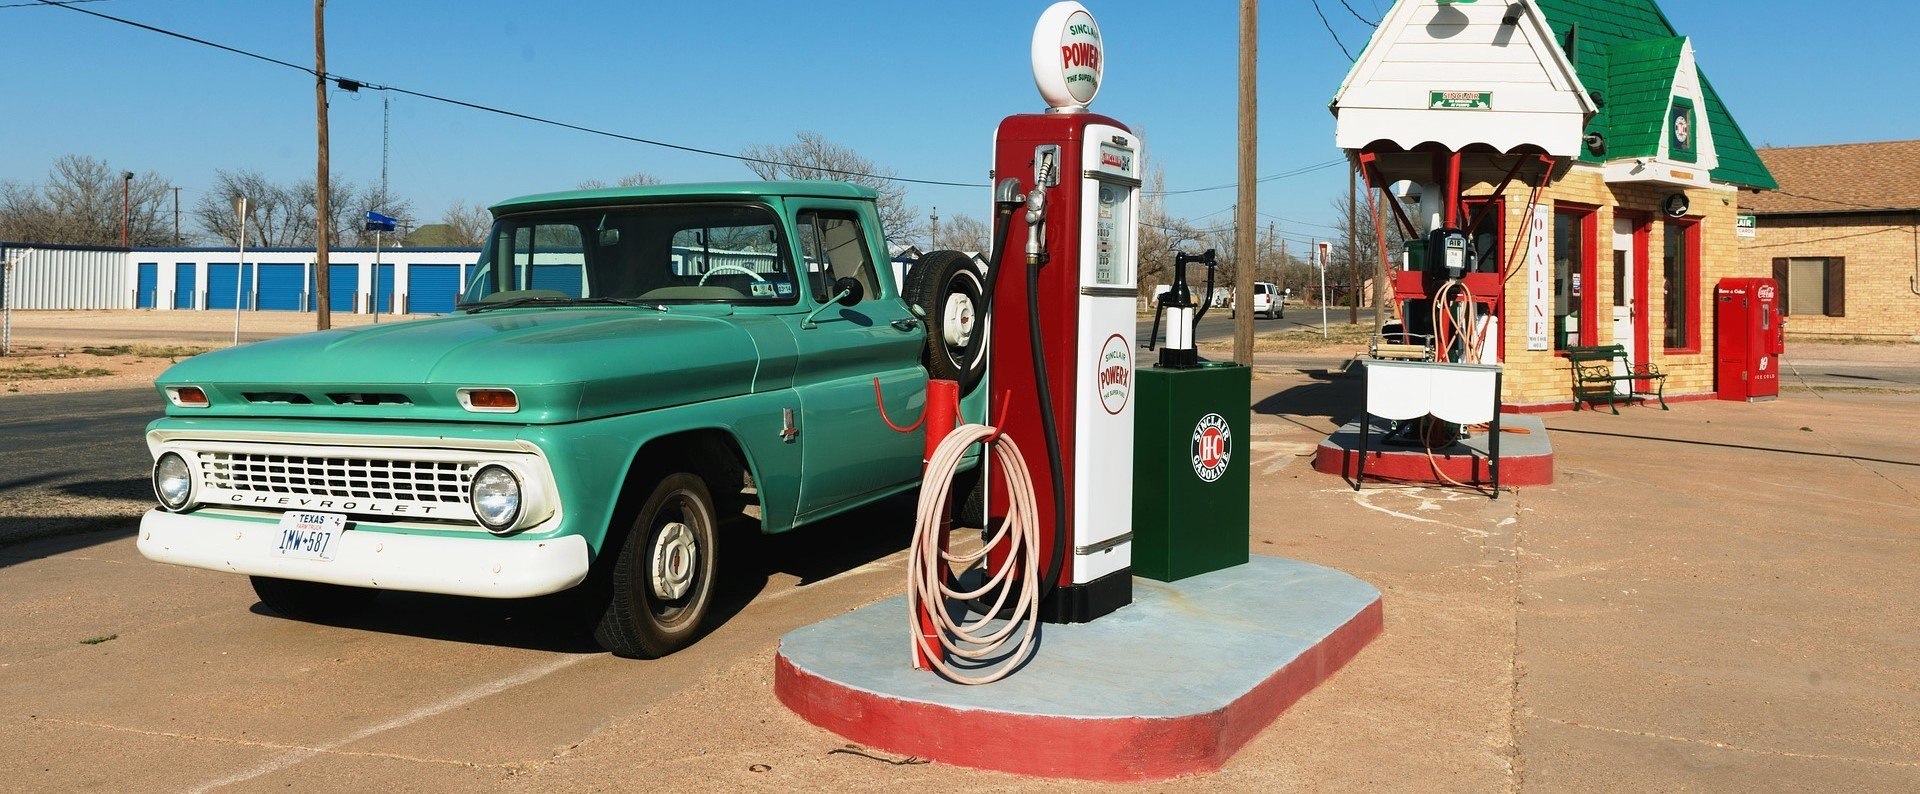 Old Car on a Gas Station in Texas - VeteranCarDonations.org